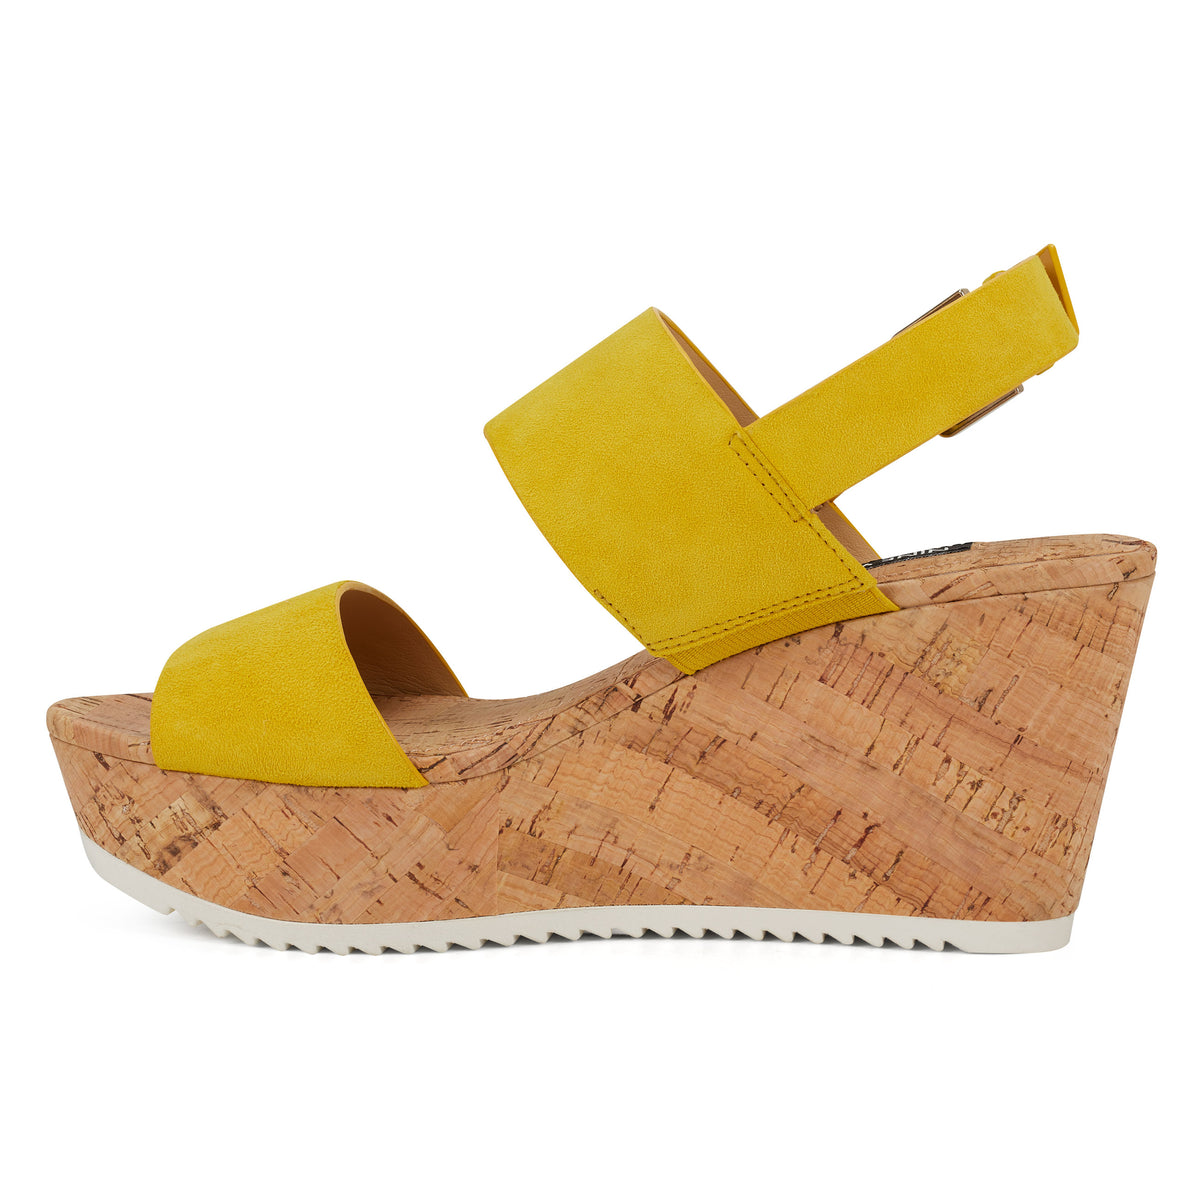 dera-platform-wedge-sandals-in-yellow-suede